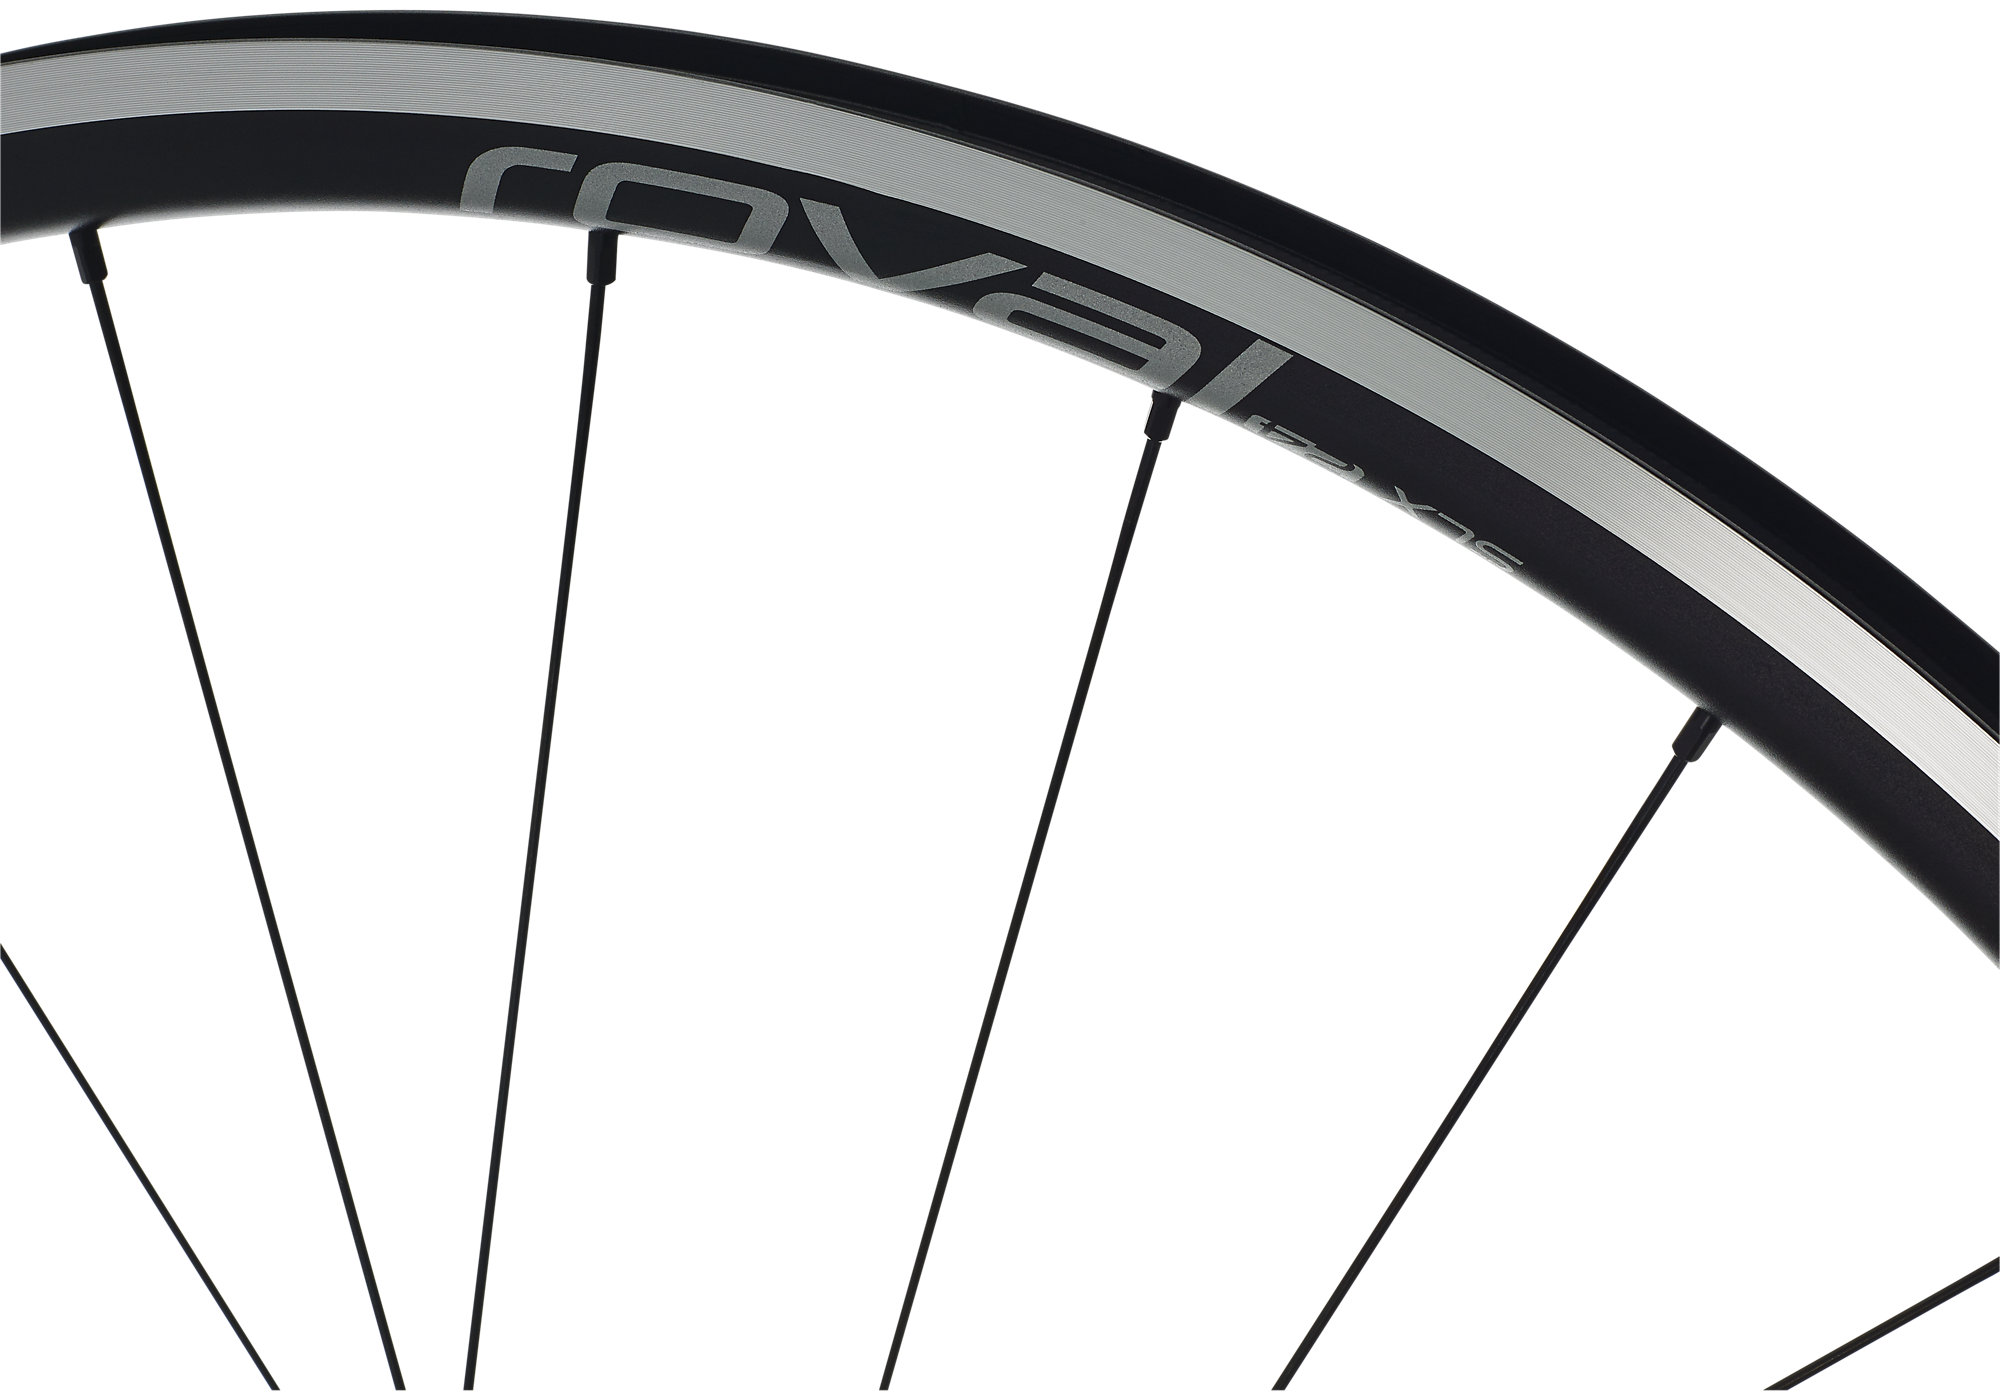 Roval SLX 24 - Tubeless Wheel